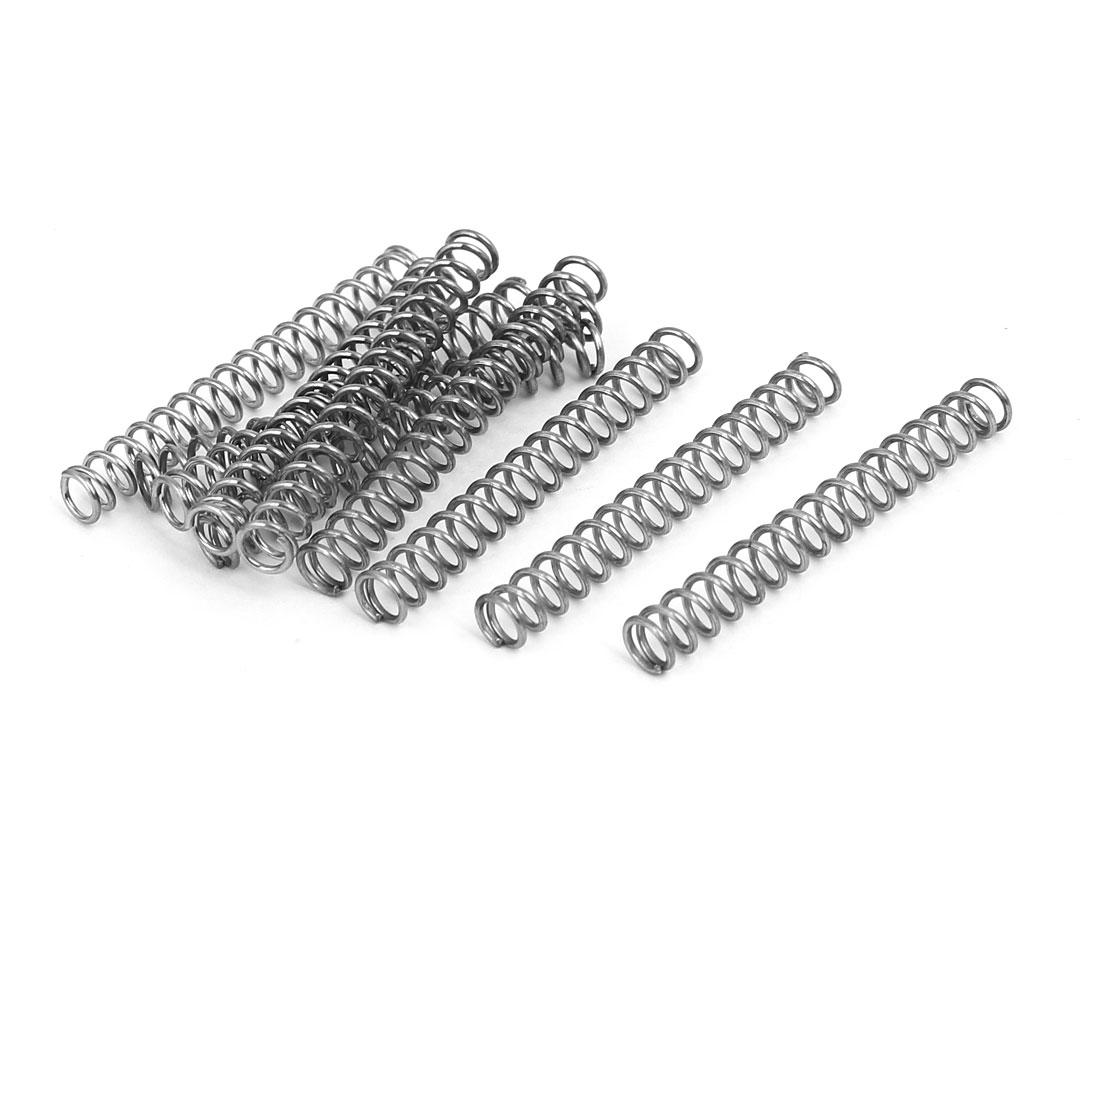 Compression Springs 7mmx5mmx40mm 304 Stainless Steel Compression Springs 10pcs